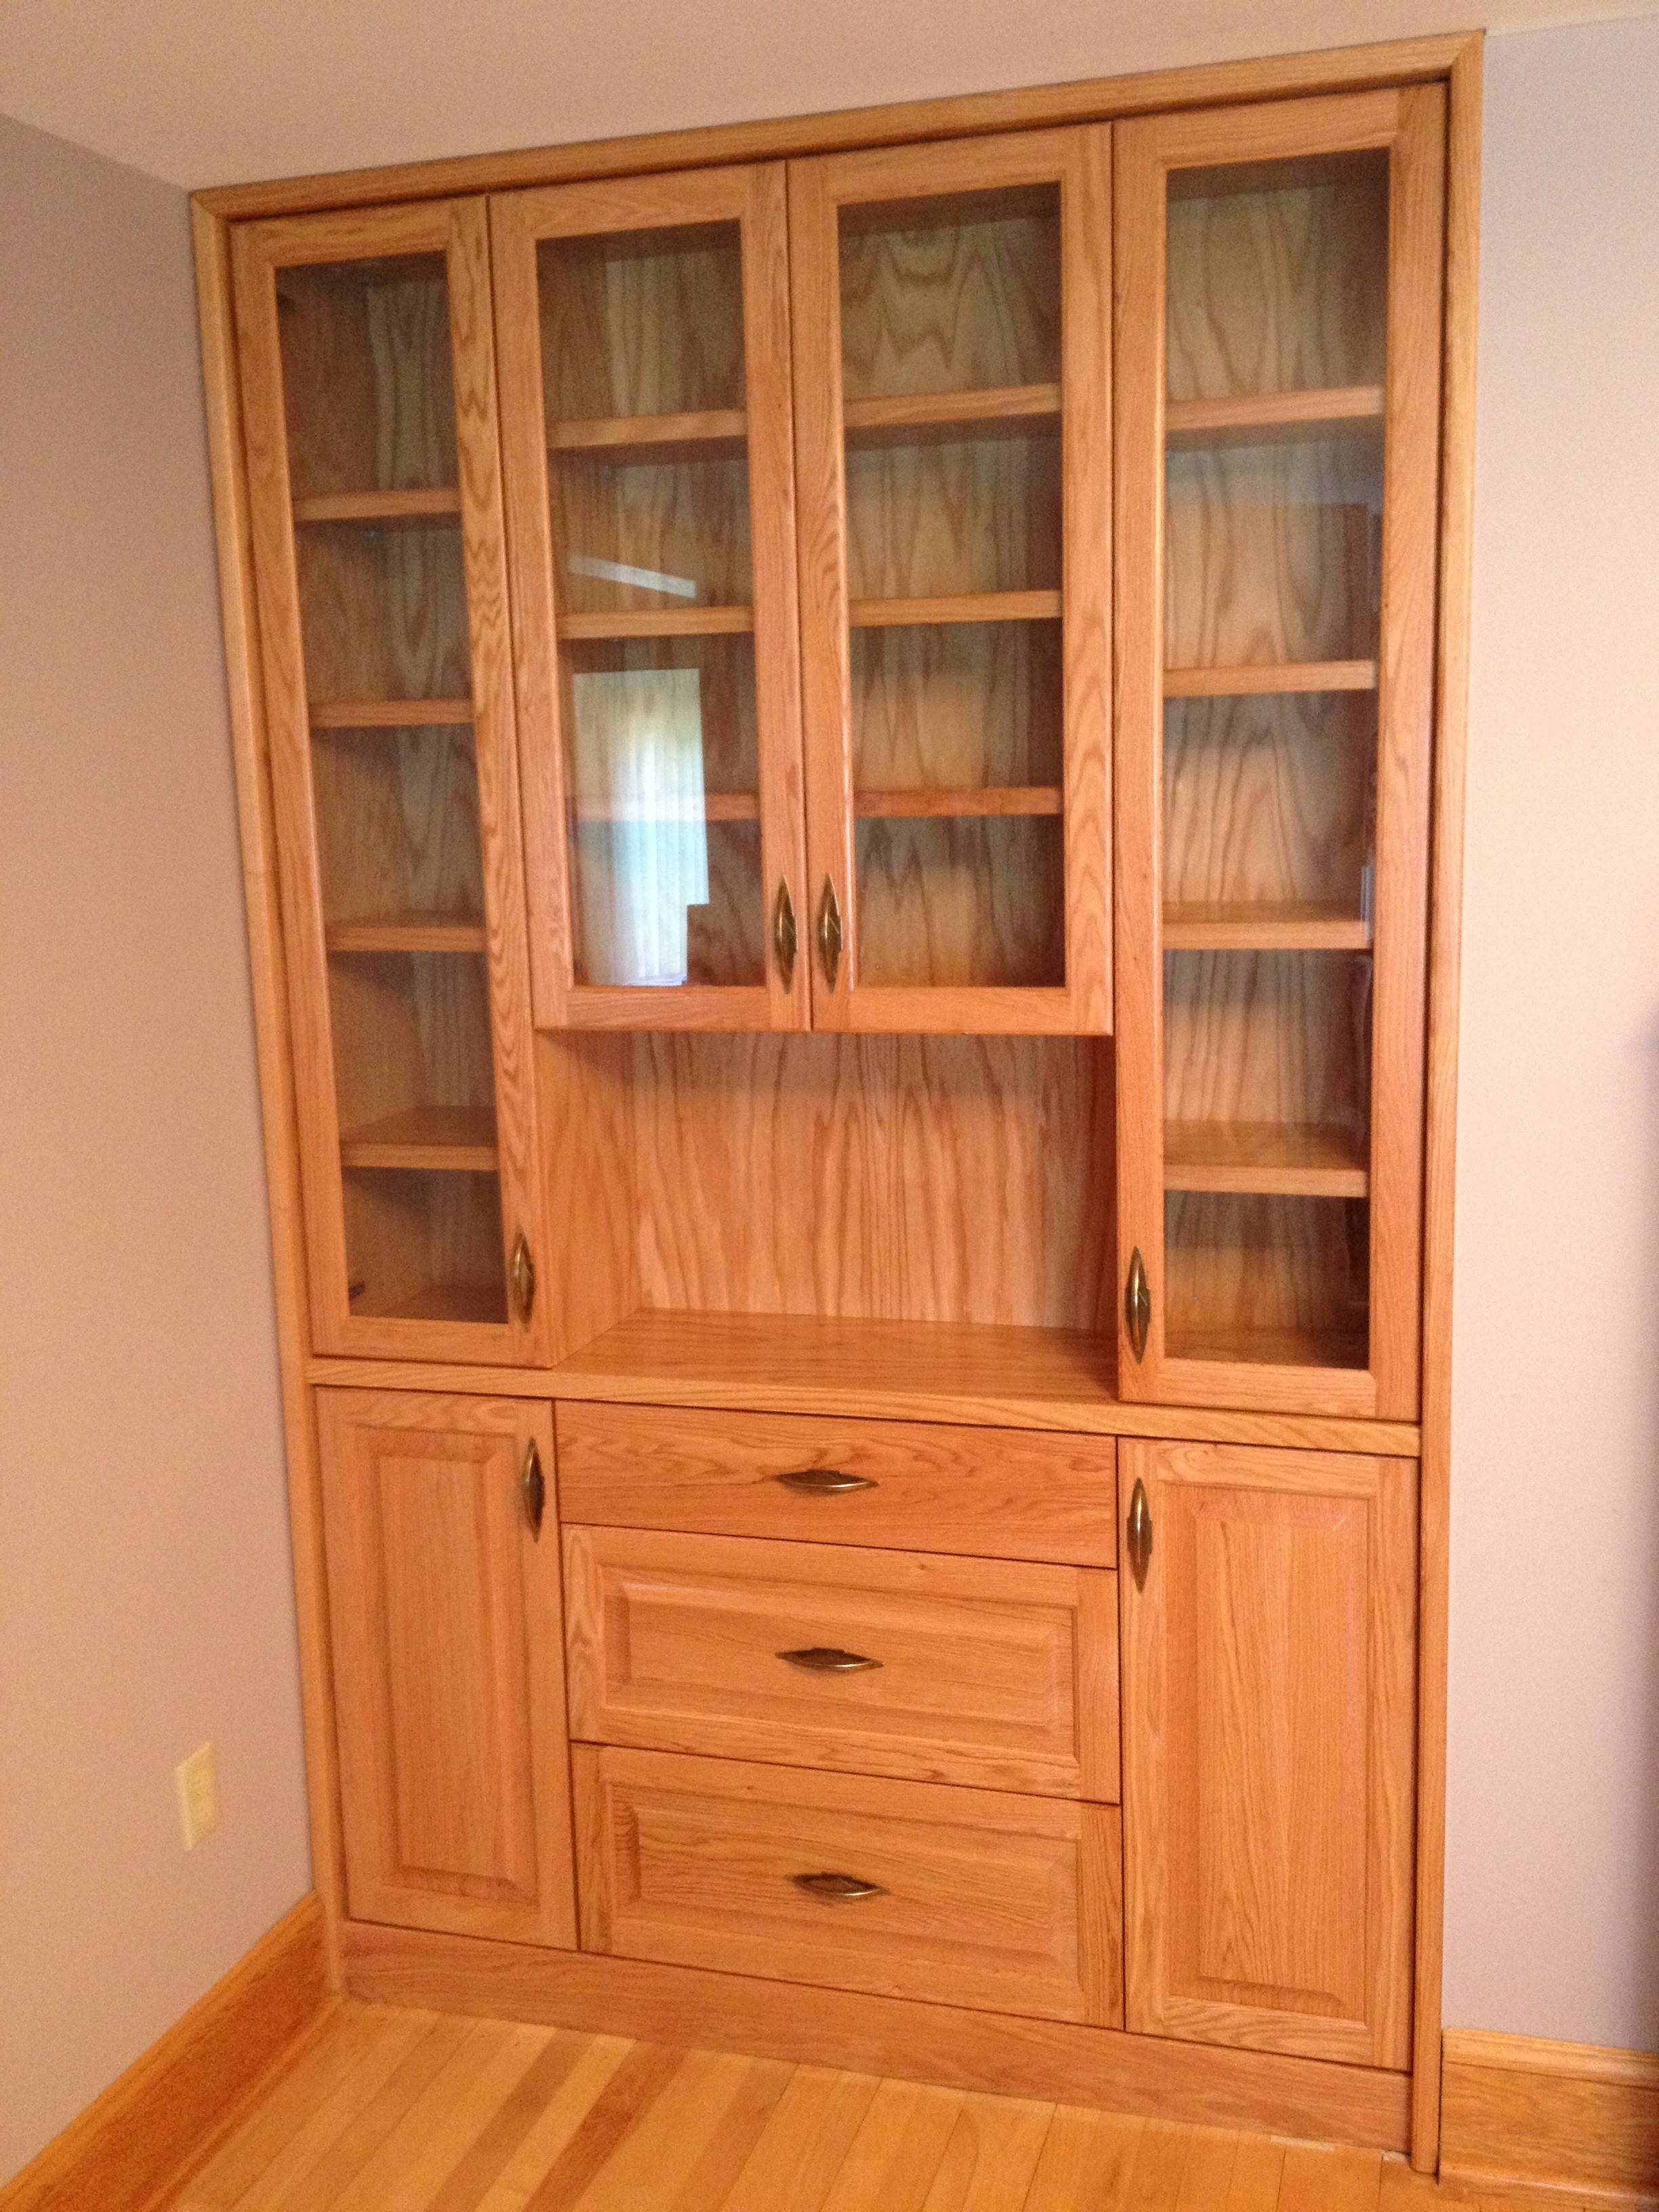 Built in china cabinet grand design for Built in cabinet design